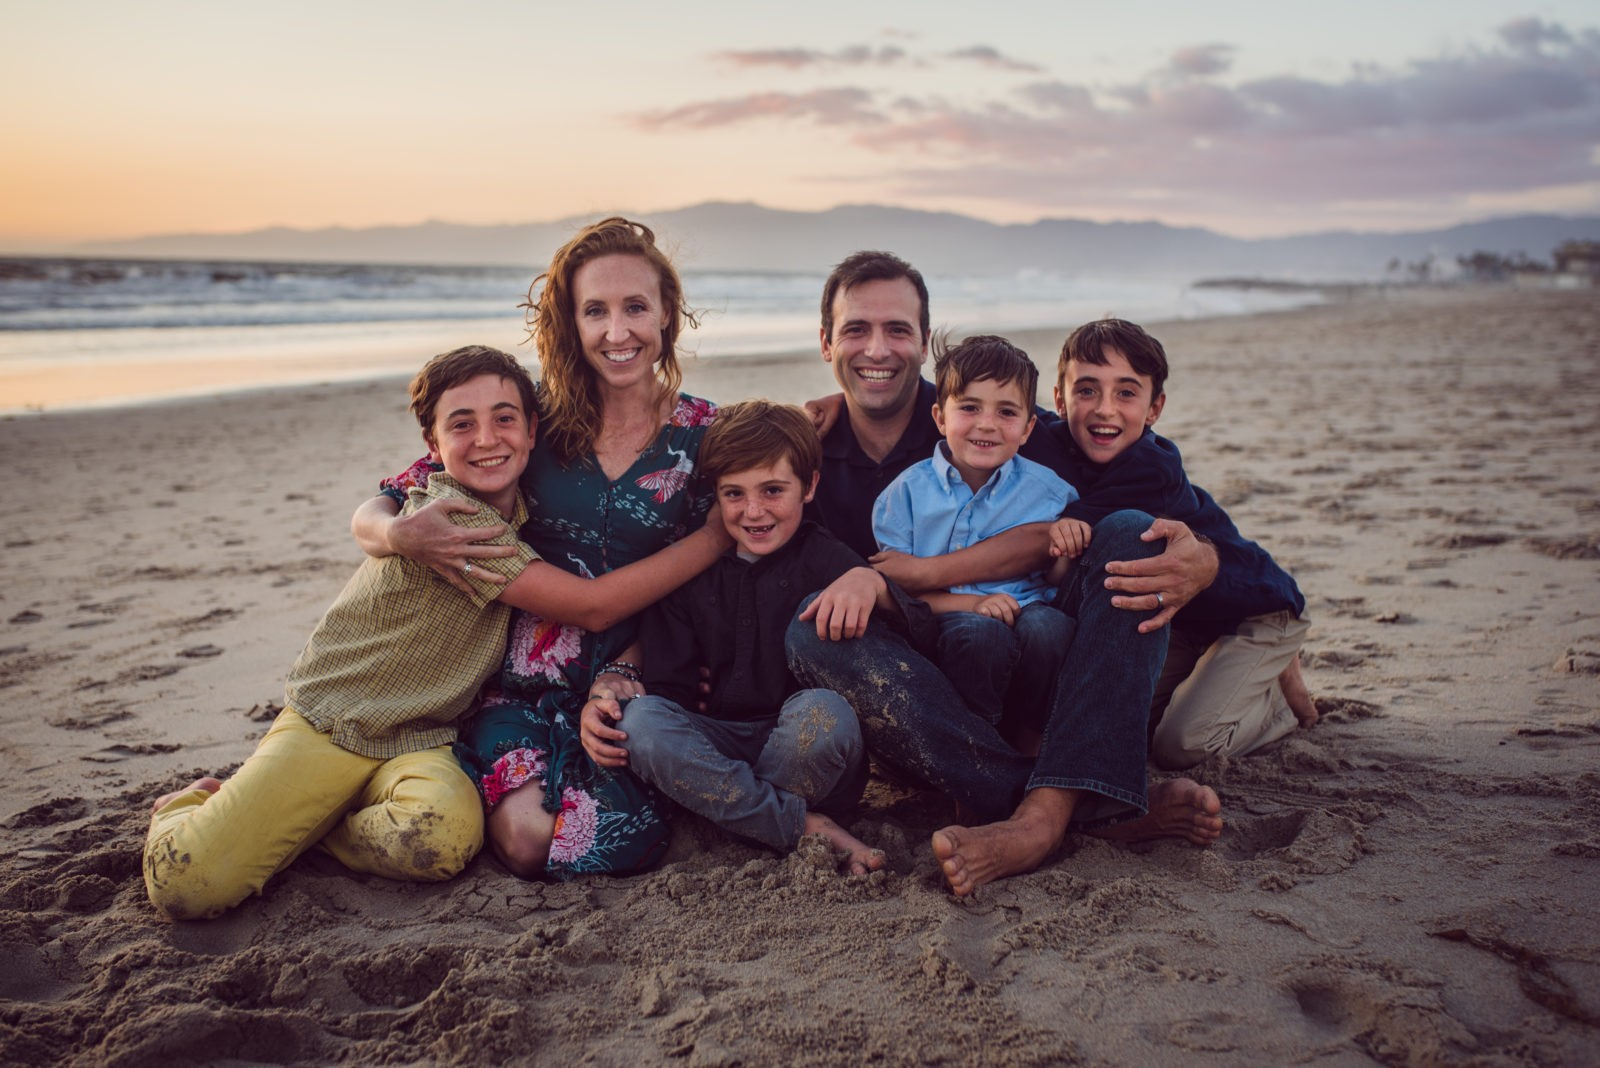 ArtShaped Photography colorfully captured this family of 4 boys while the sun sets on Venice Beach, California.